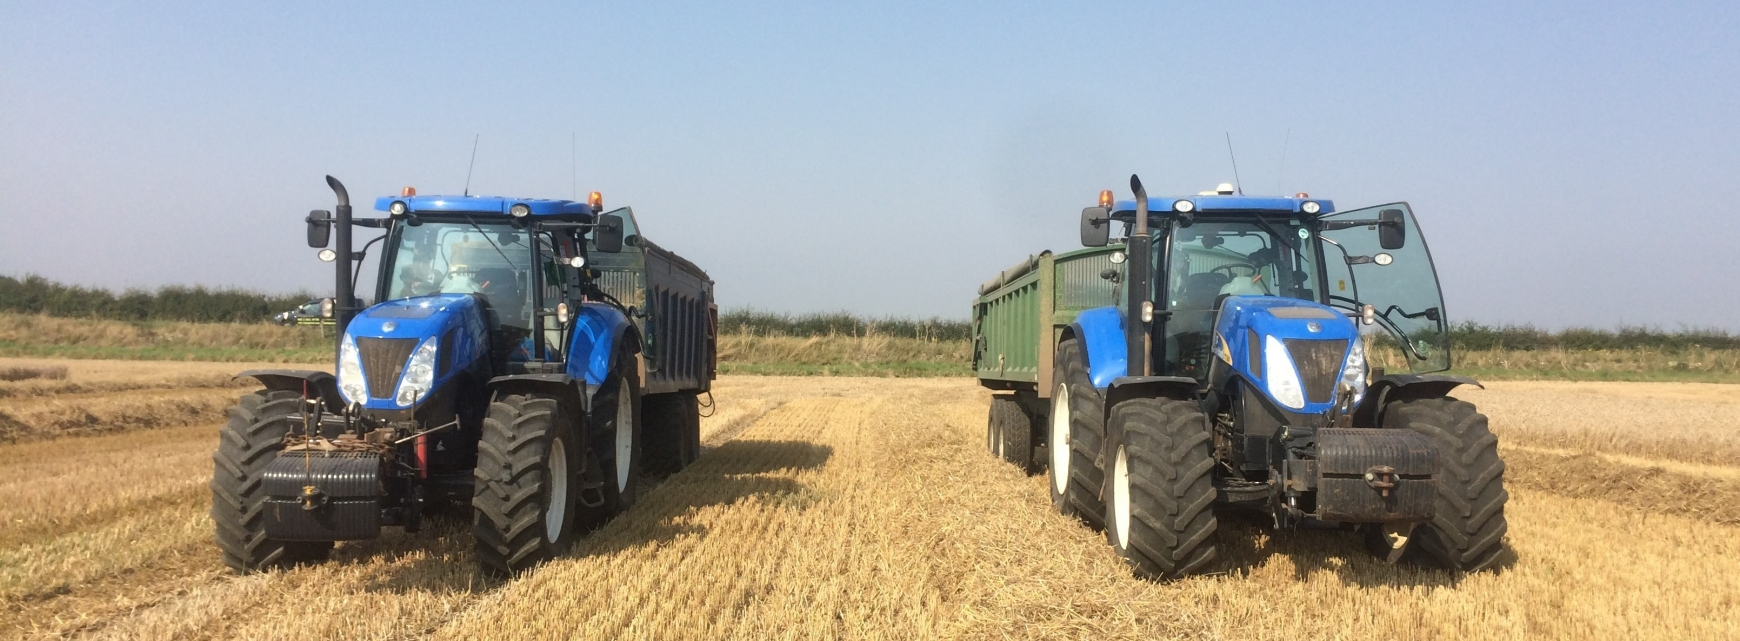 Two blue tractors in a field of straw